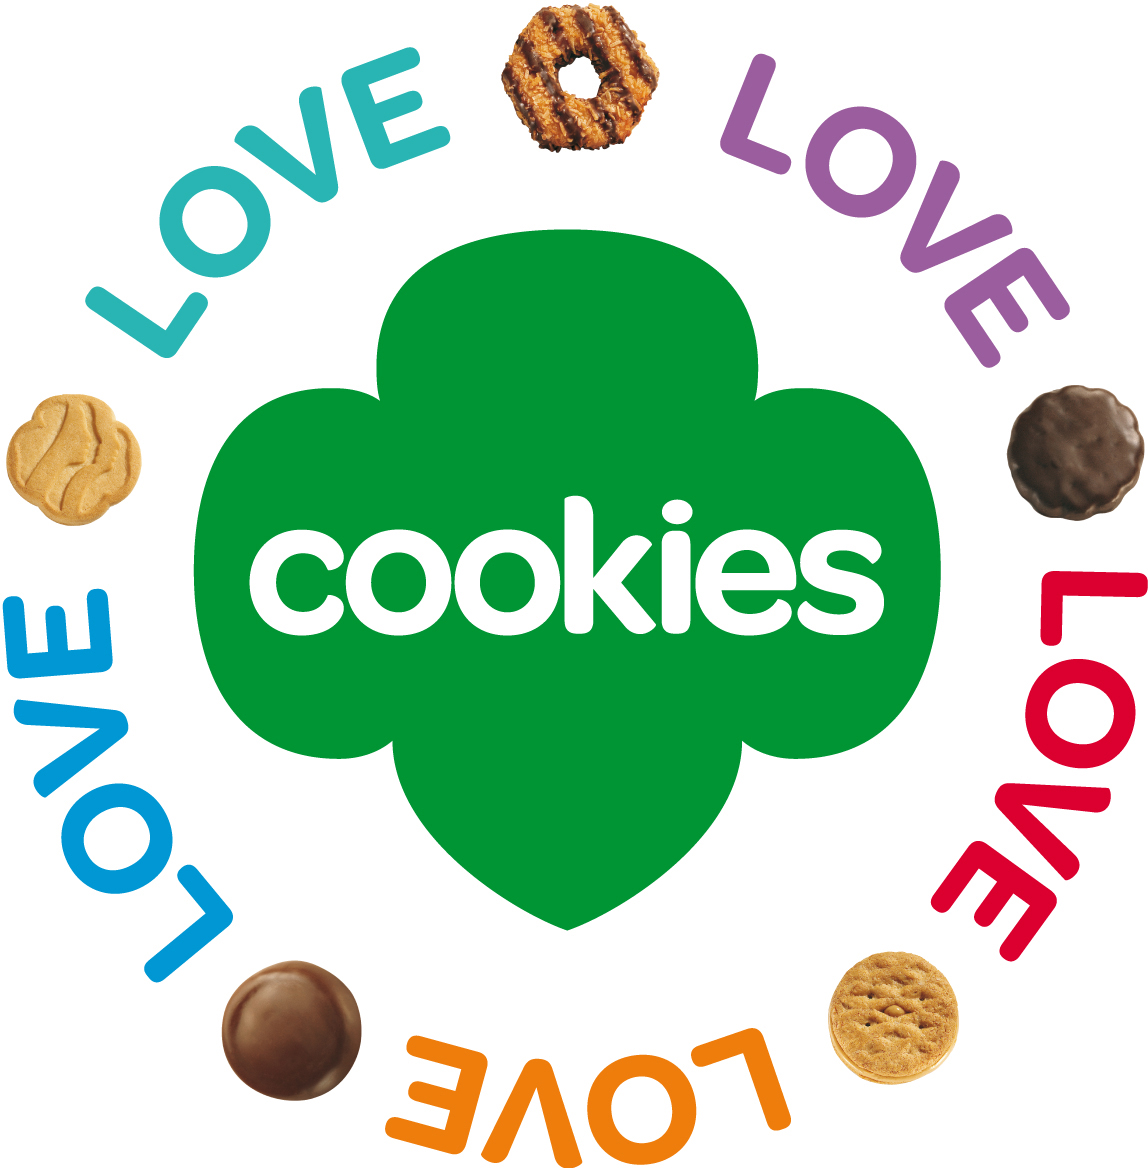 Girl scout cookies clipart free image transparent Girl Scout Cookie Clip Art N2 free image image transparent